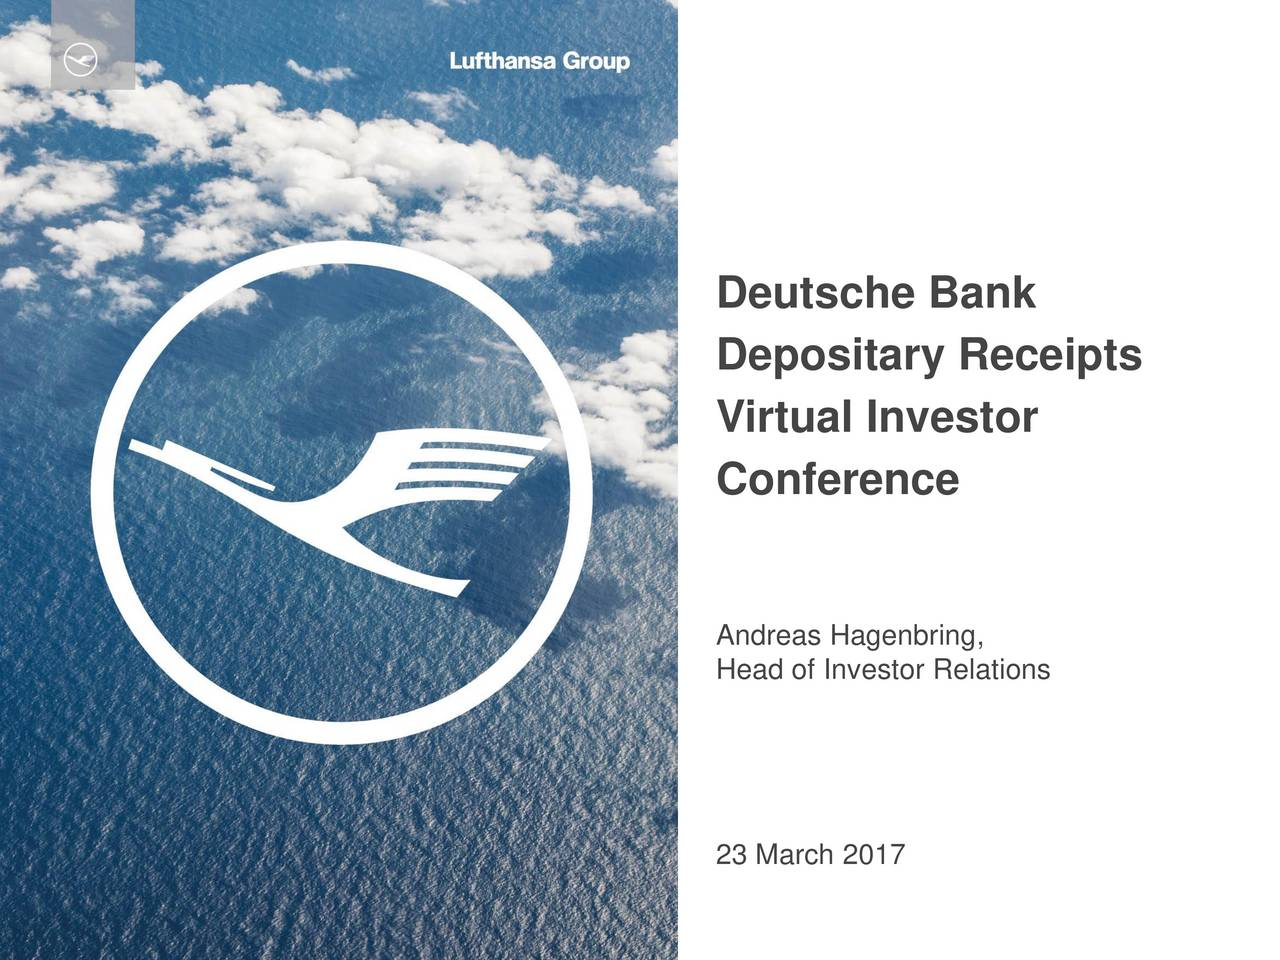 Depositary Receipts Virtual Investor Conference Andreas Hagenbring, Head of Investor Relations 23 March 2017